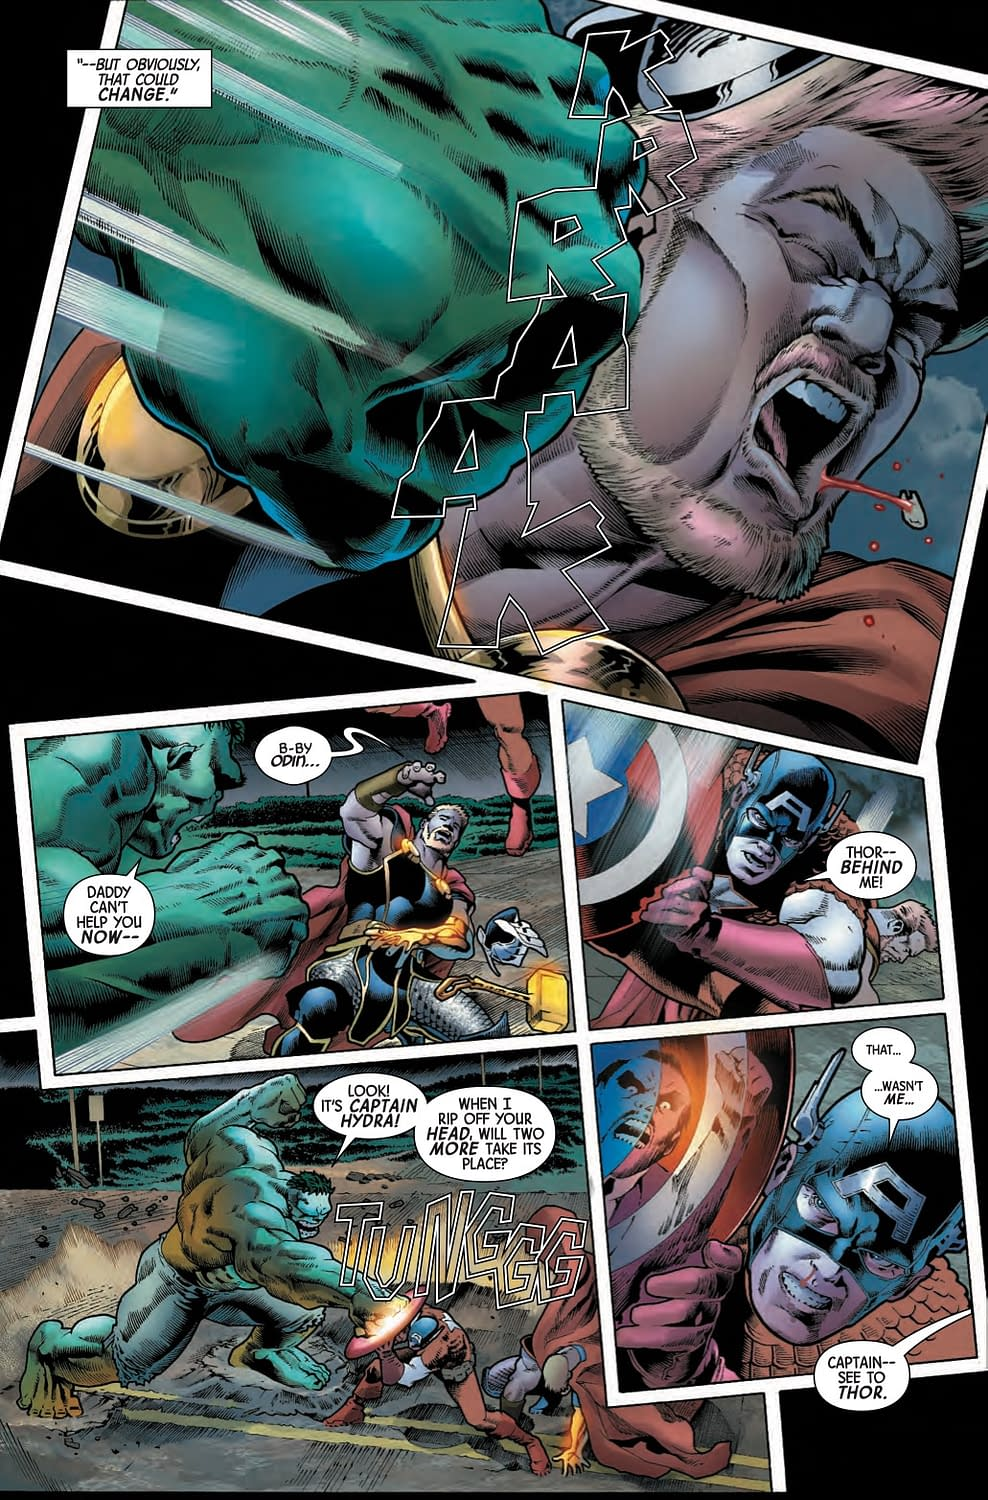 The Hulk Still Hasn't Gotten Over Secret Empire (Immortal Hulk #7 Preview)